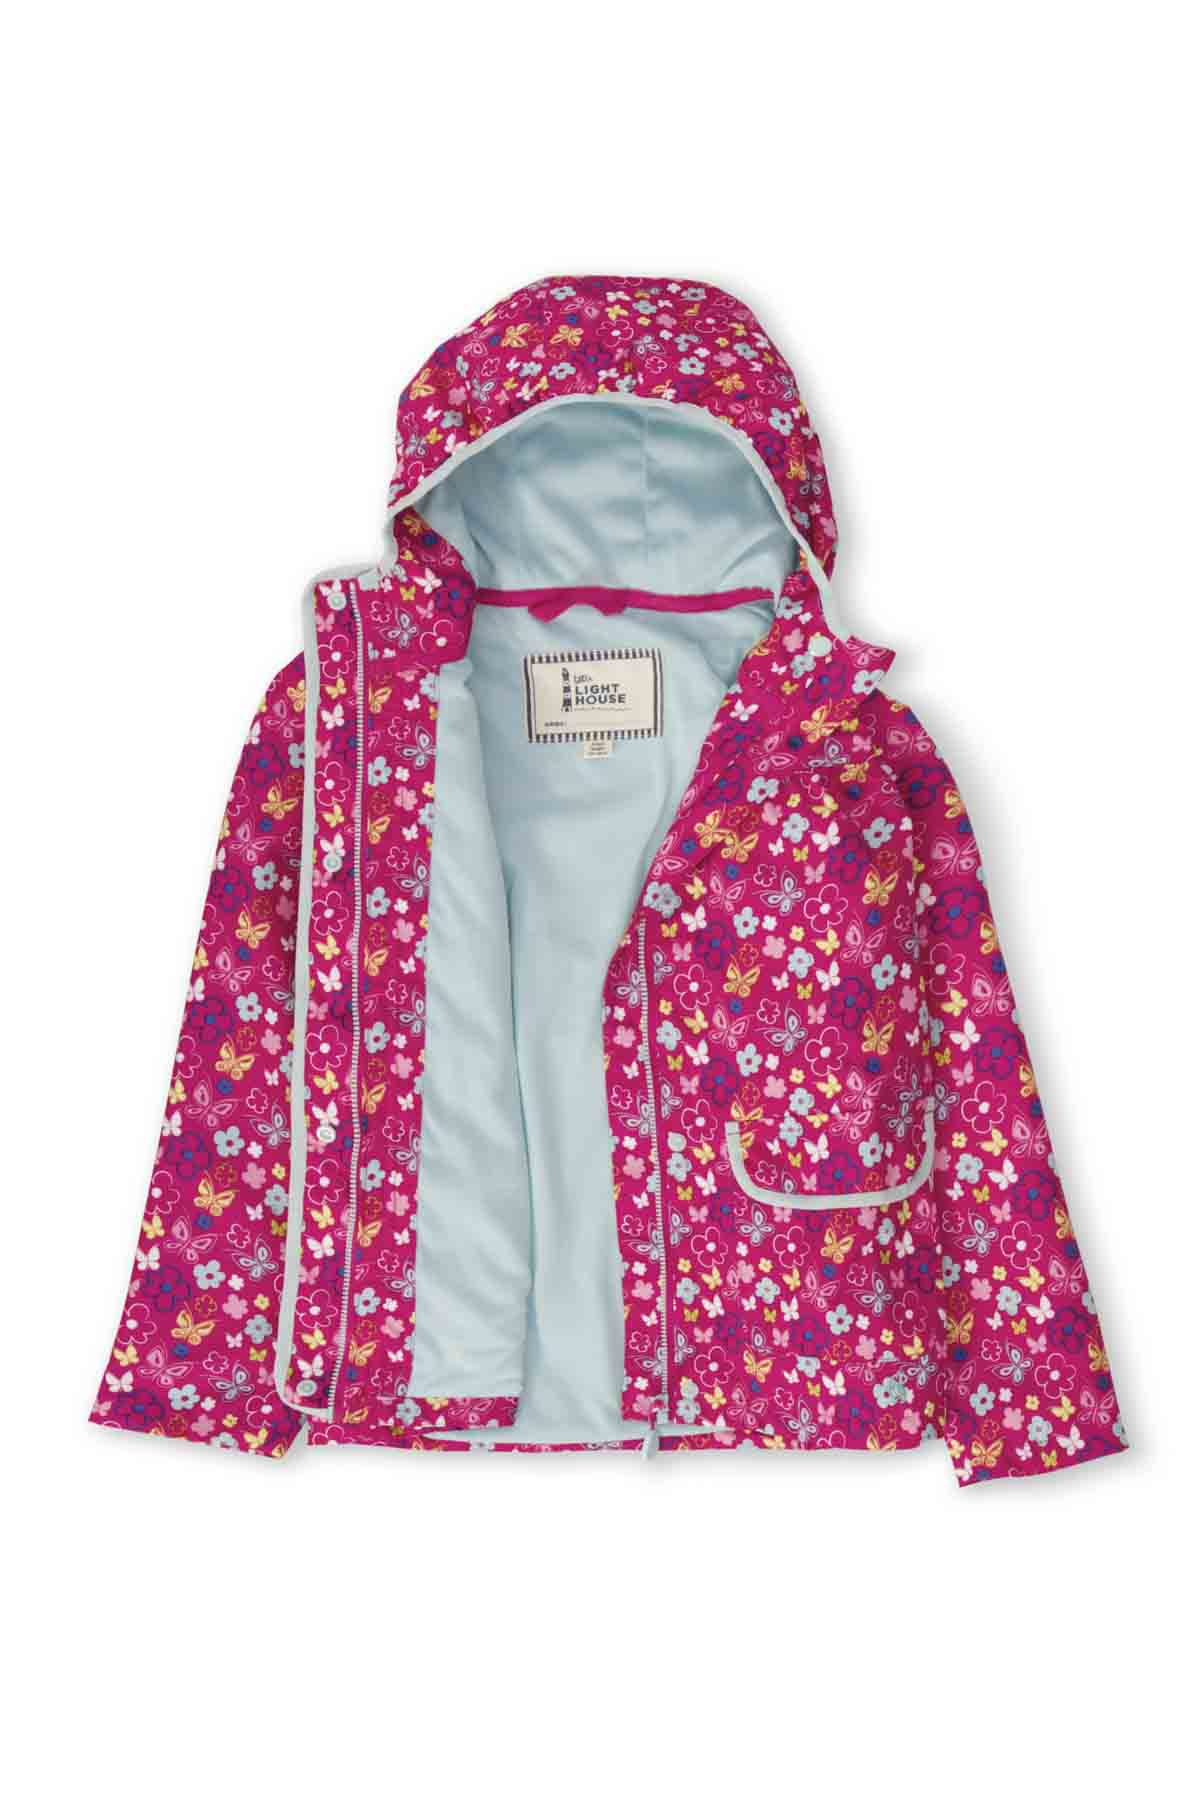 Lighthouse Fleur Girl's Waterproof Coat - Butterfly Print